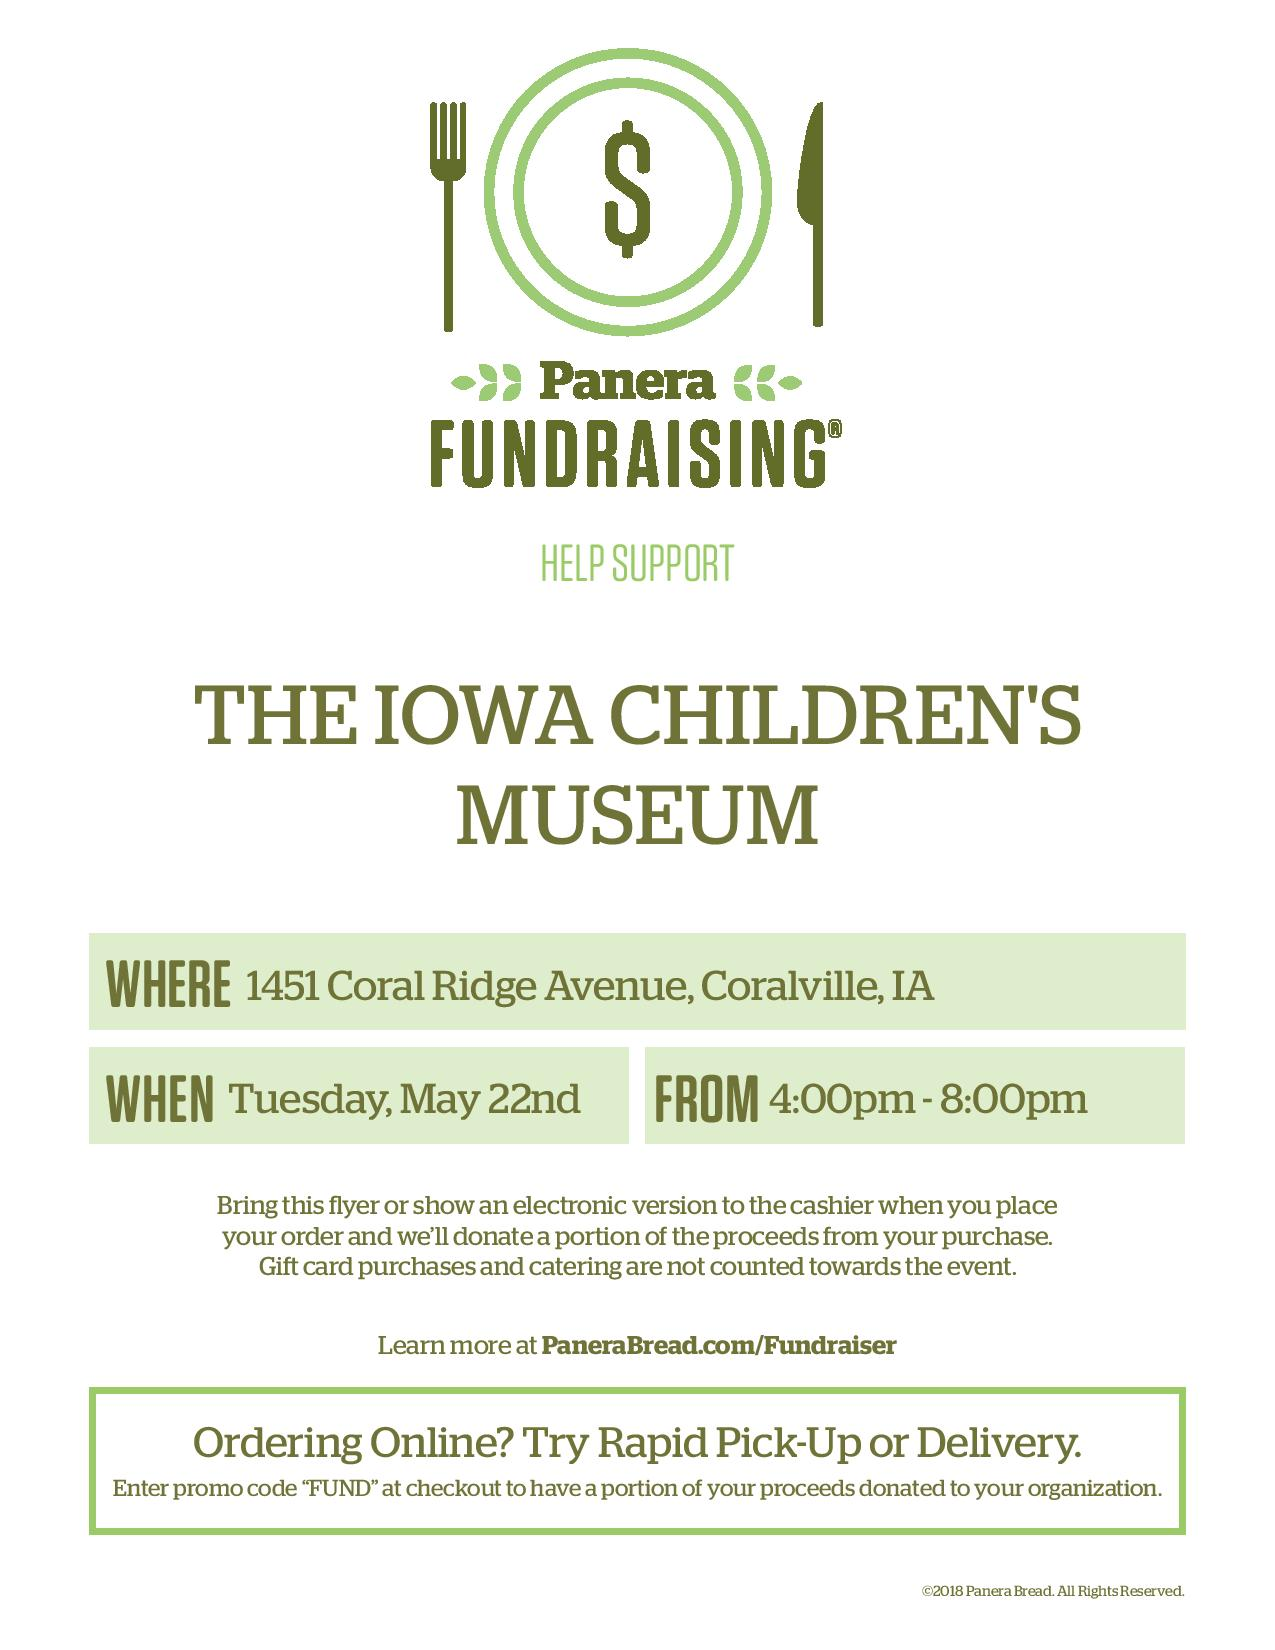 Dine Out for Play Fundraiser at Panera Bread - Iowa Children\'s Museum